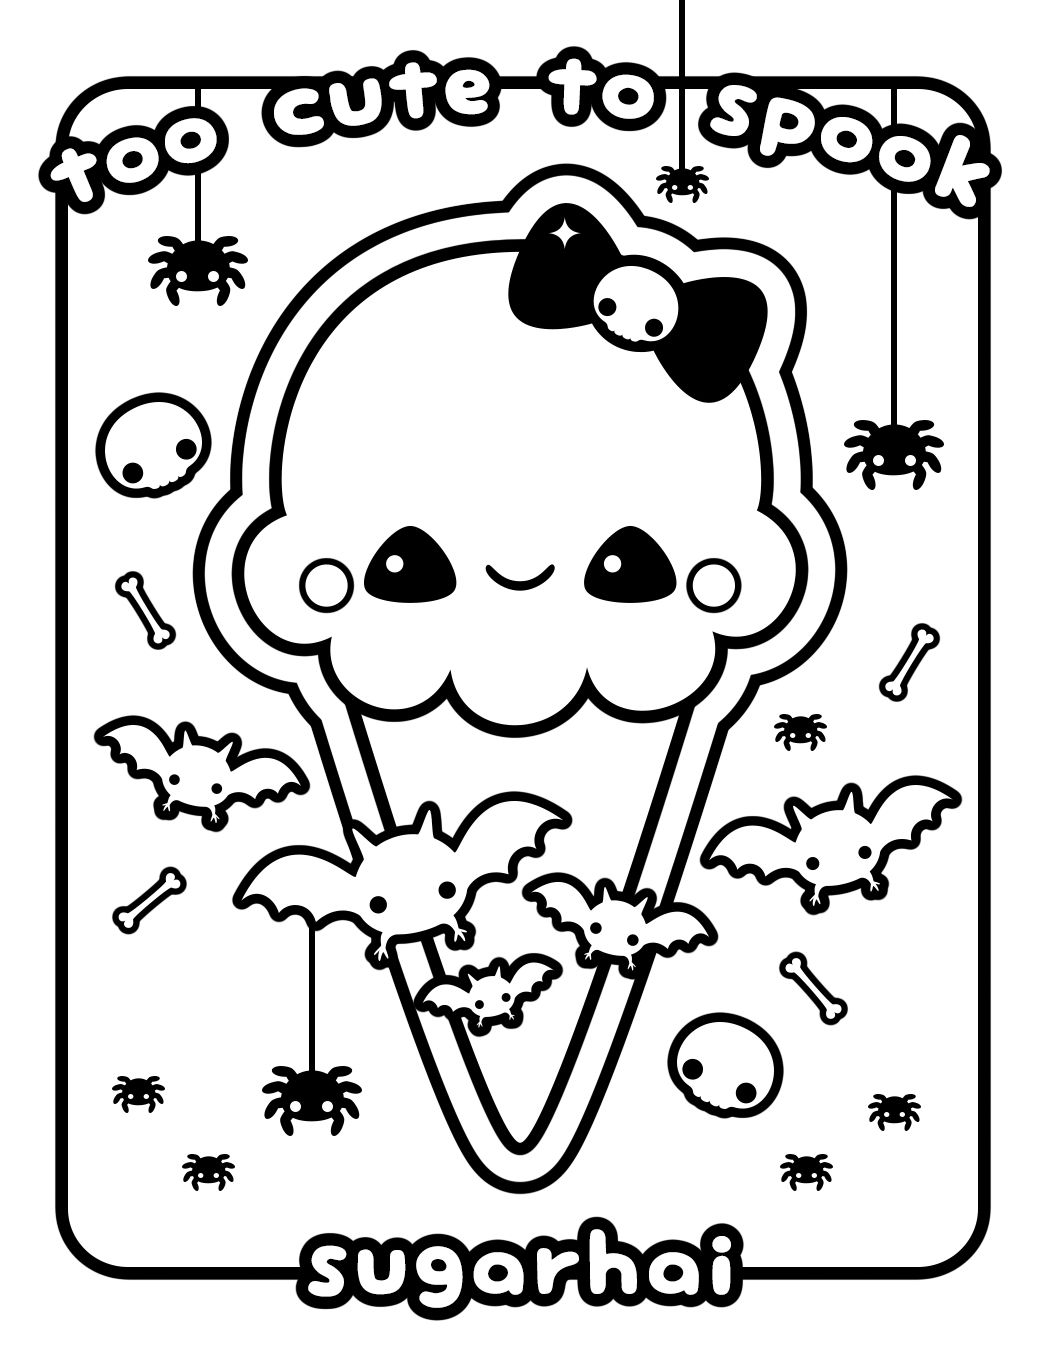 Printable Kawaii Coloring Pages Coloringsuite Free Coloring Pages Download Halloween Coloring Pages Disney Coloring Pages Unicorn Coloring Pages